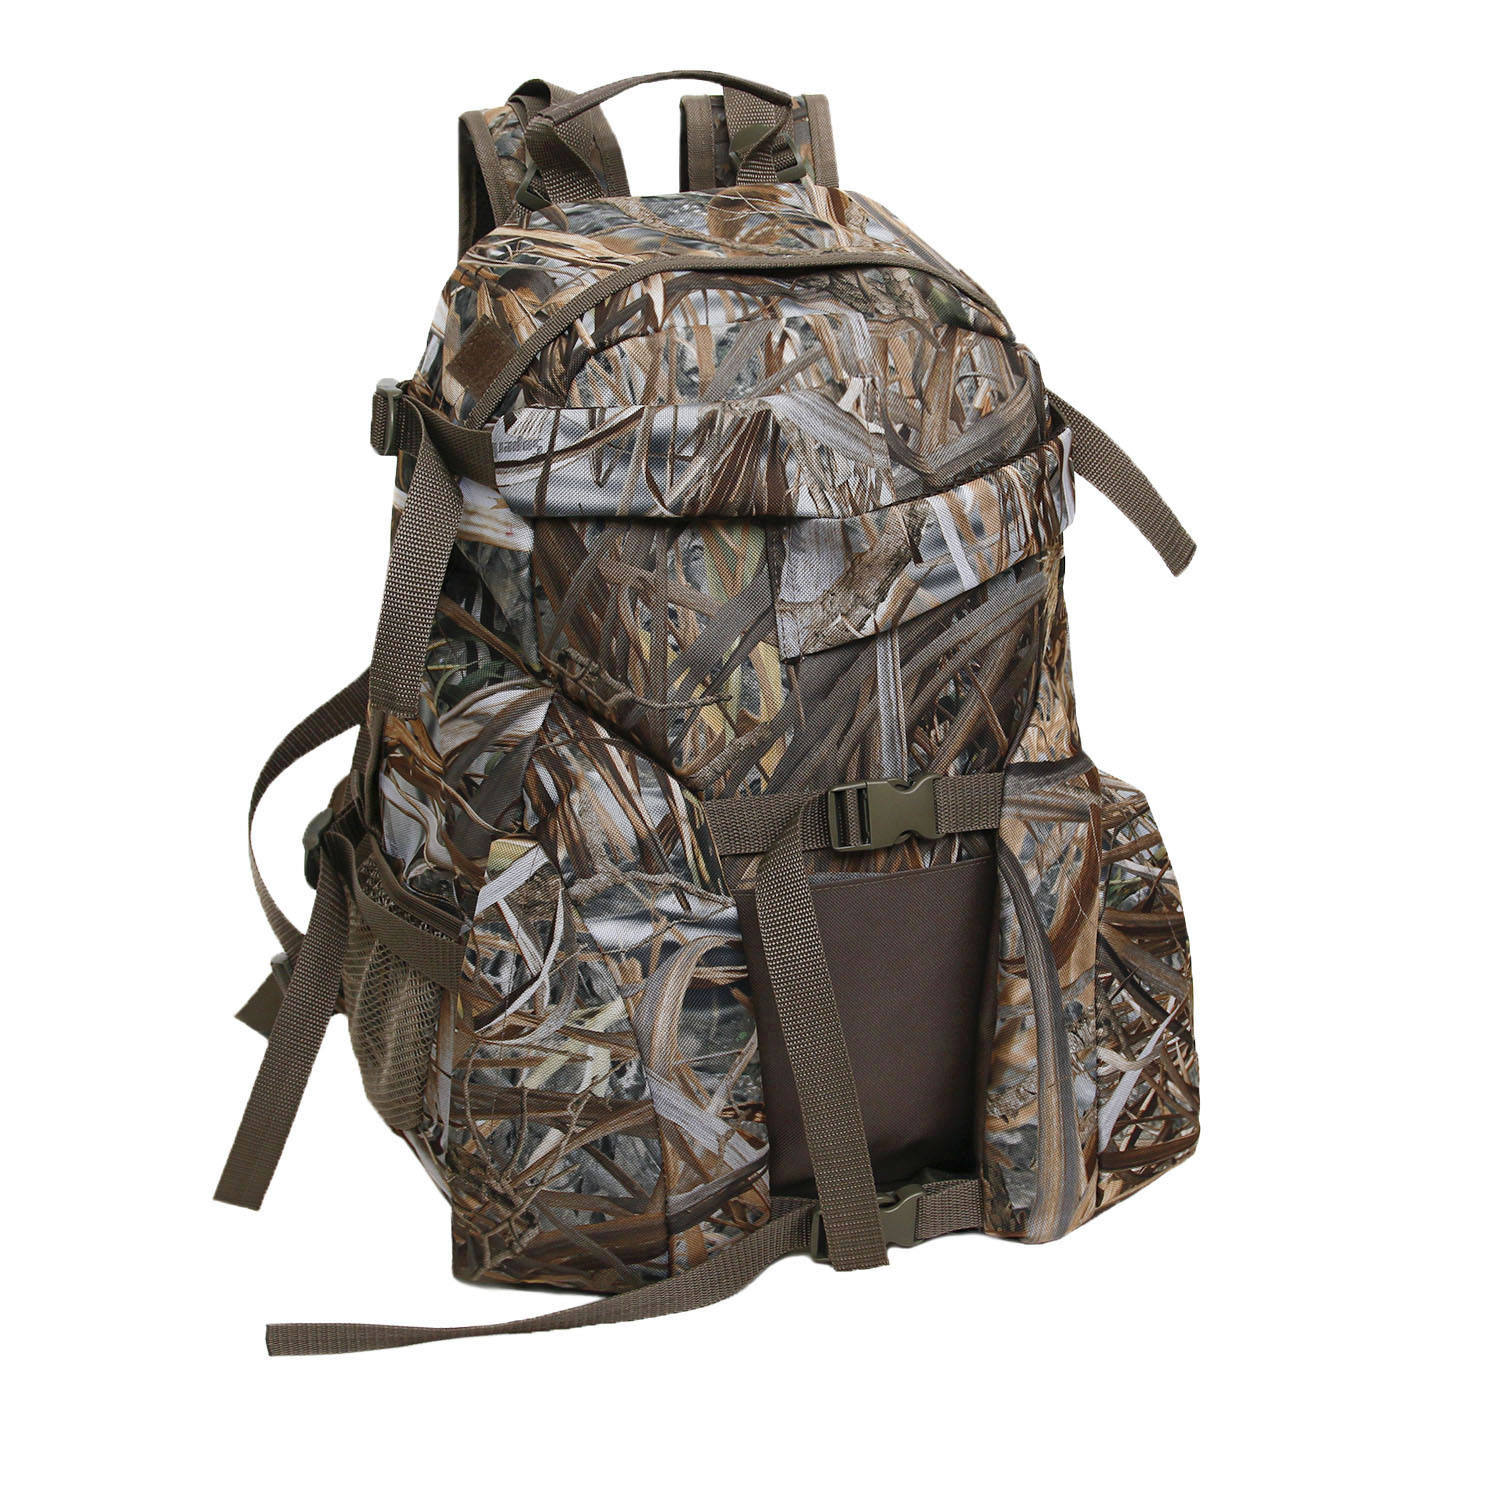 New Arrival Large Capacity Multifunction Hunting Camo Backpack With Handle And Gun Support Pouch Hunting Backpack